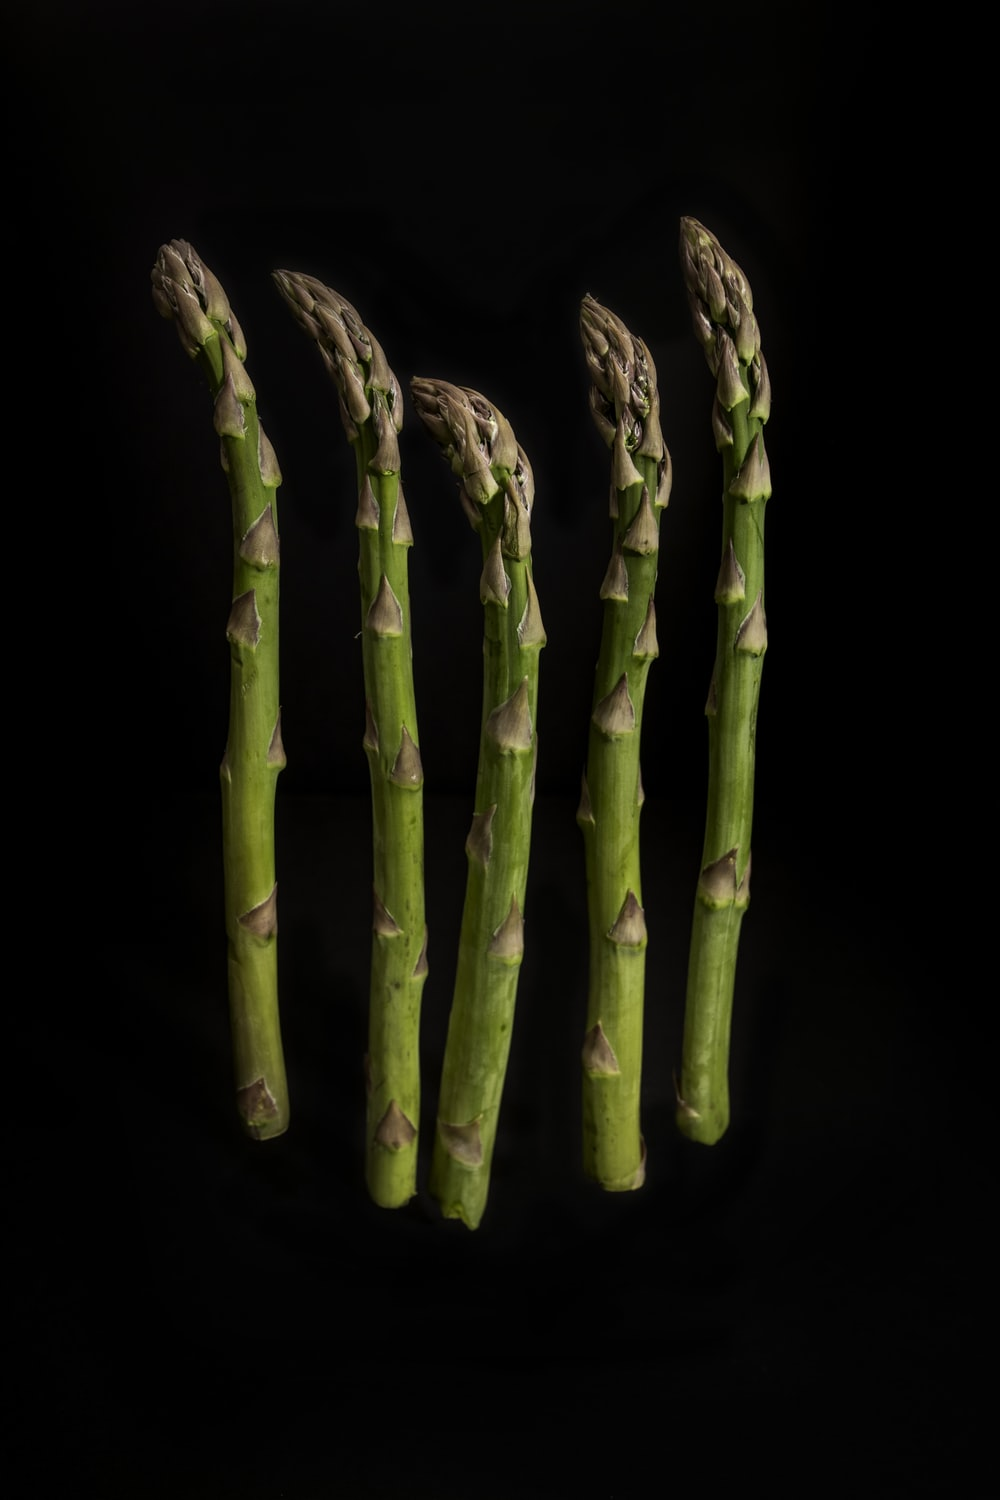 six green-and-brown asparagus with black background